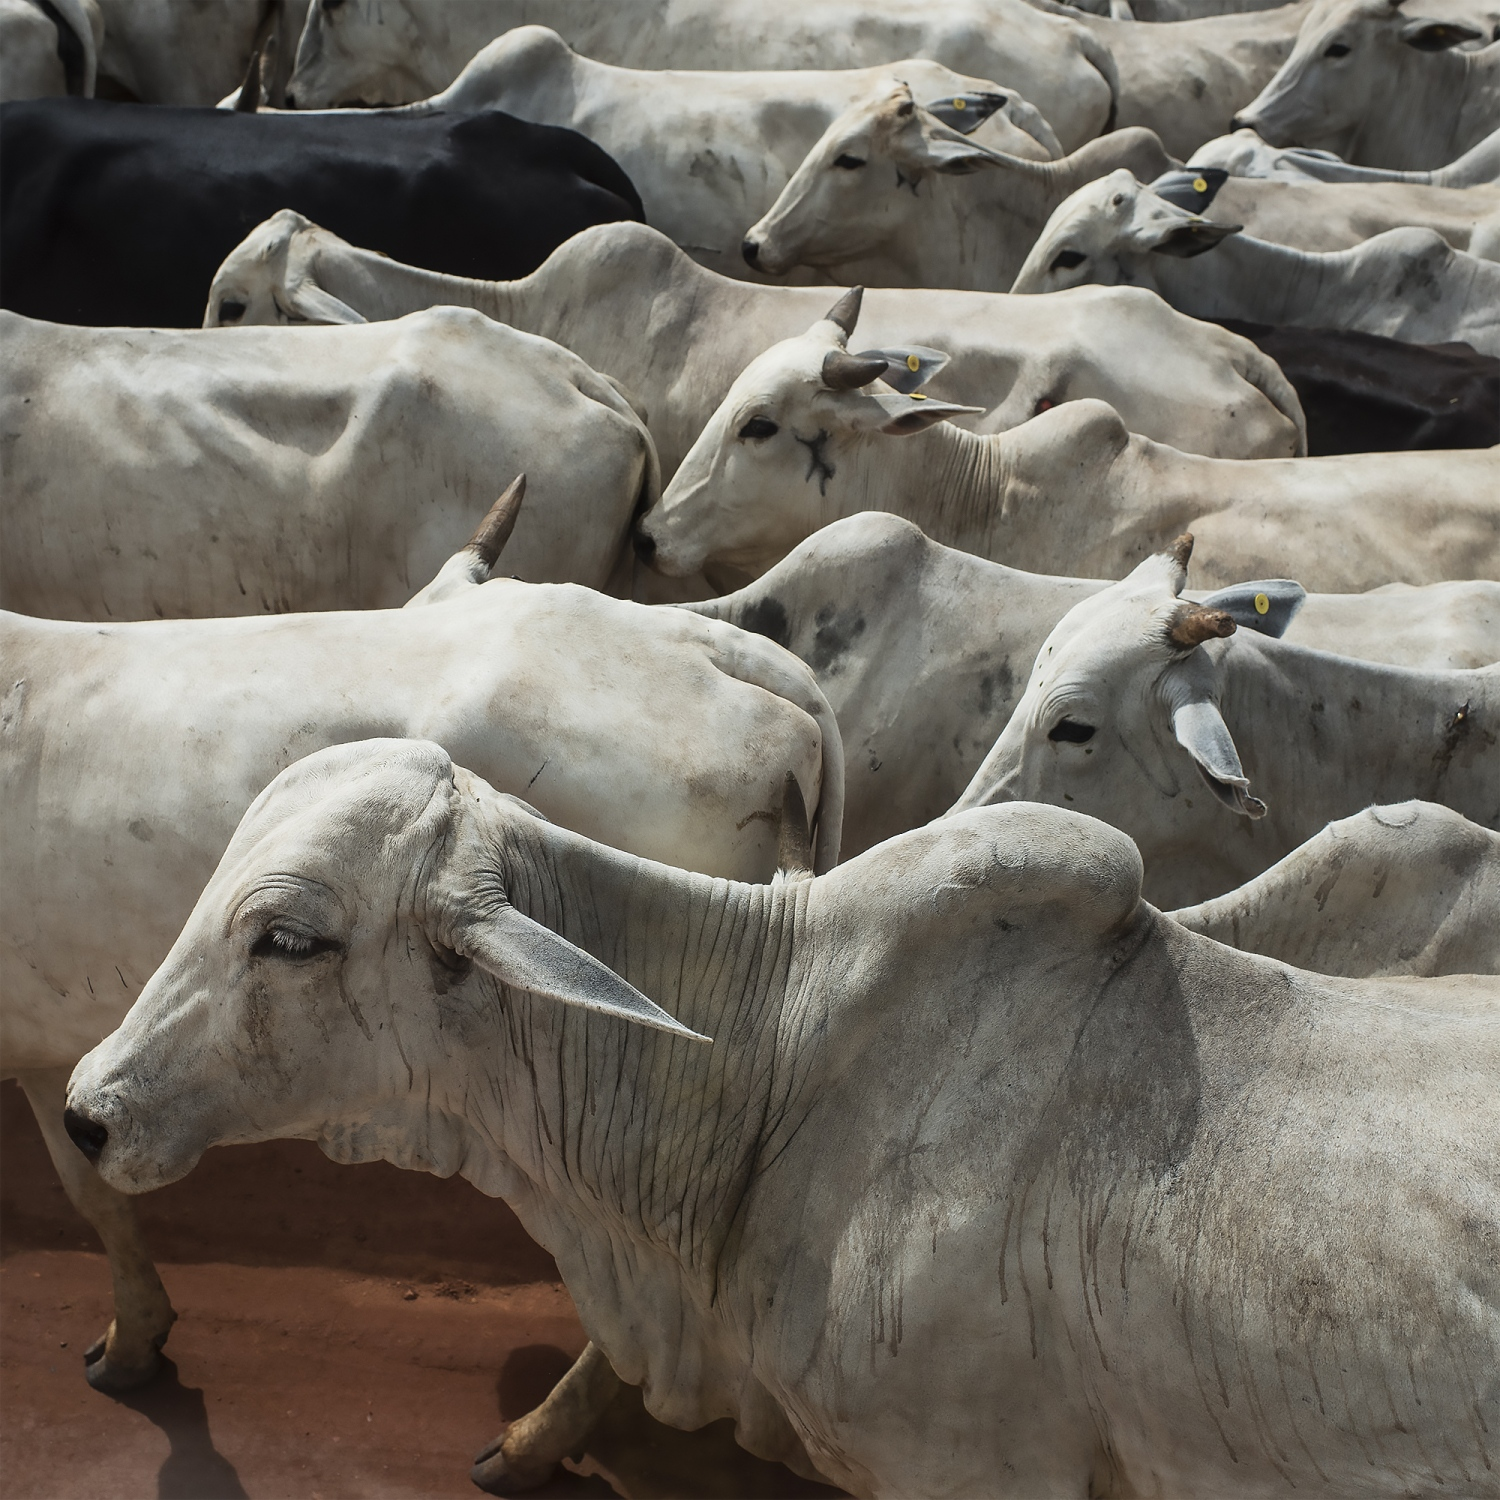 2016. Cattle are herded along the Transamazon highway in Para, Brazil. Cattle ranching is one of the major casued for deforestation in the Amazon. /Aaron Vincent Elkaim